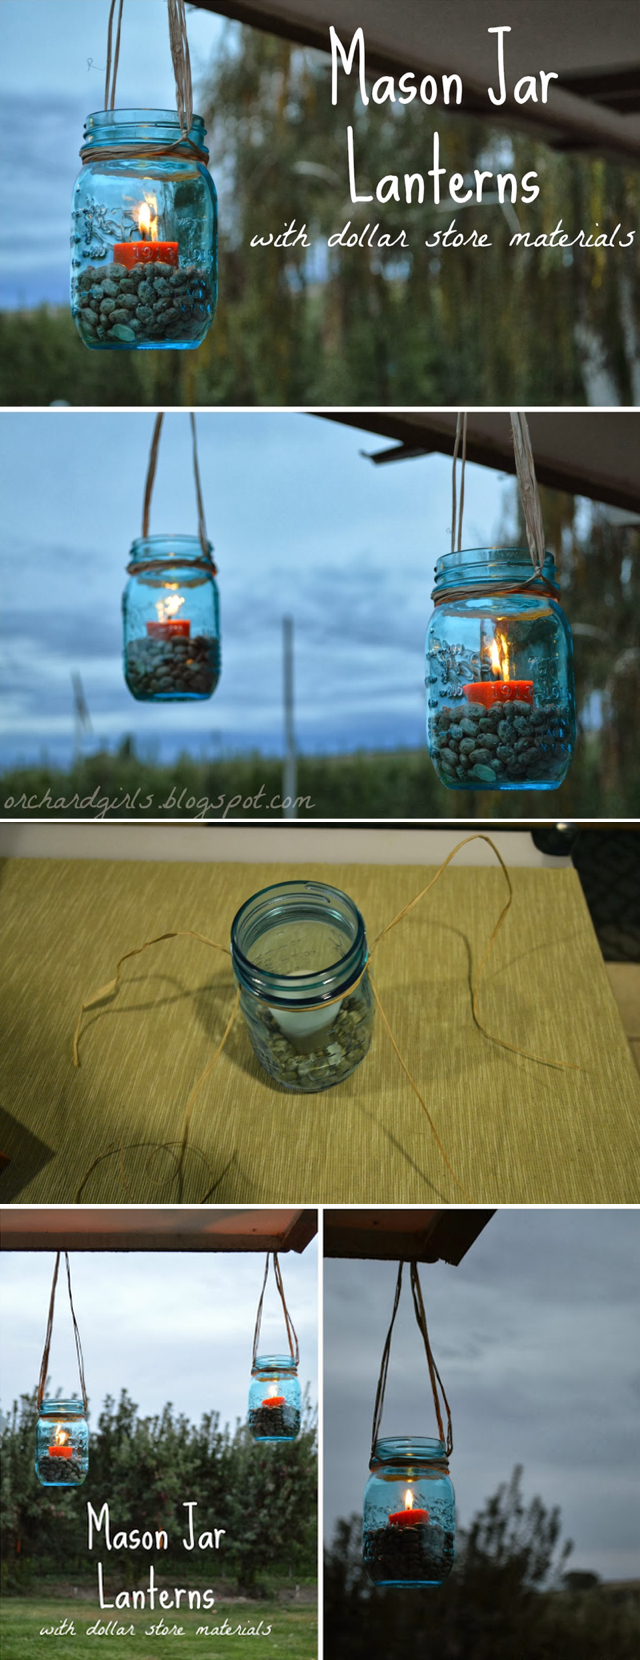 Mason Jar Lanterns with Dollar Store Materials